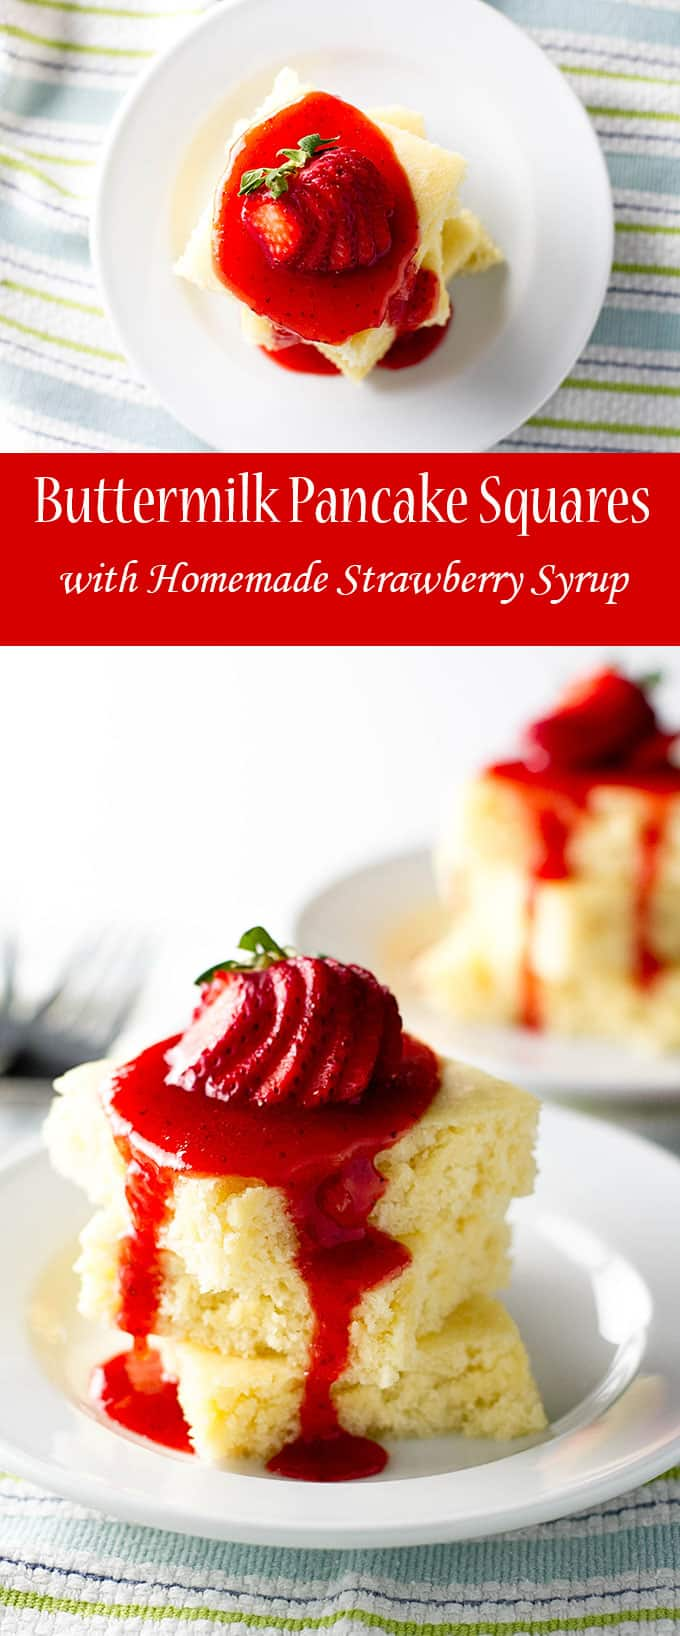 Take a break from pancake flipping at the stovetop and make these easy buttermilk pancake squares in the oven! Topped with a homemade strawberry syrup | Want more breakfast ideas? https://www.pinterest.com/april7116/breaking-the-fast/